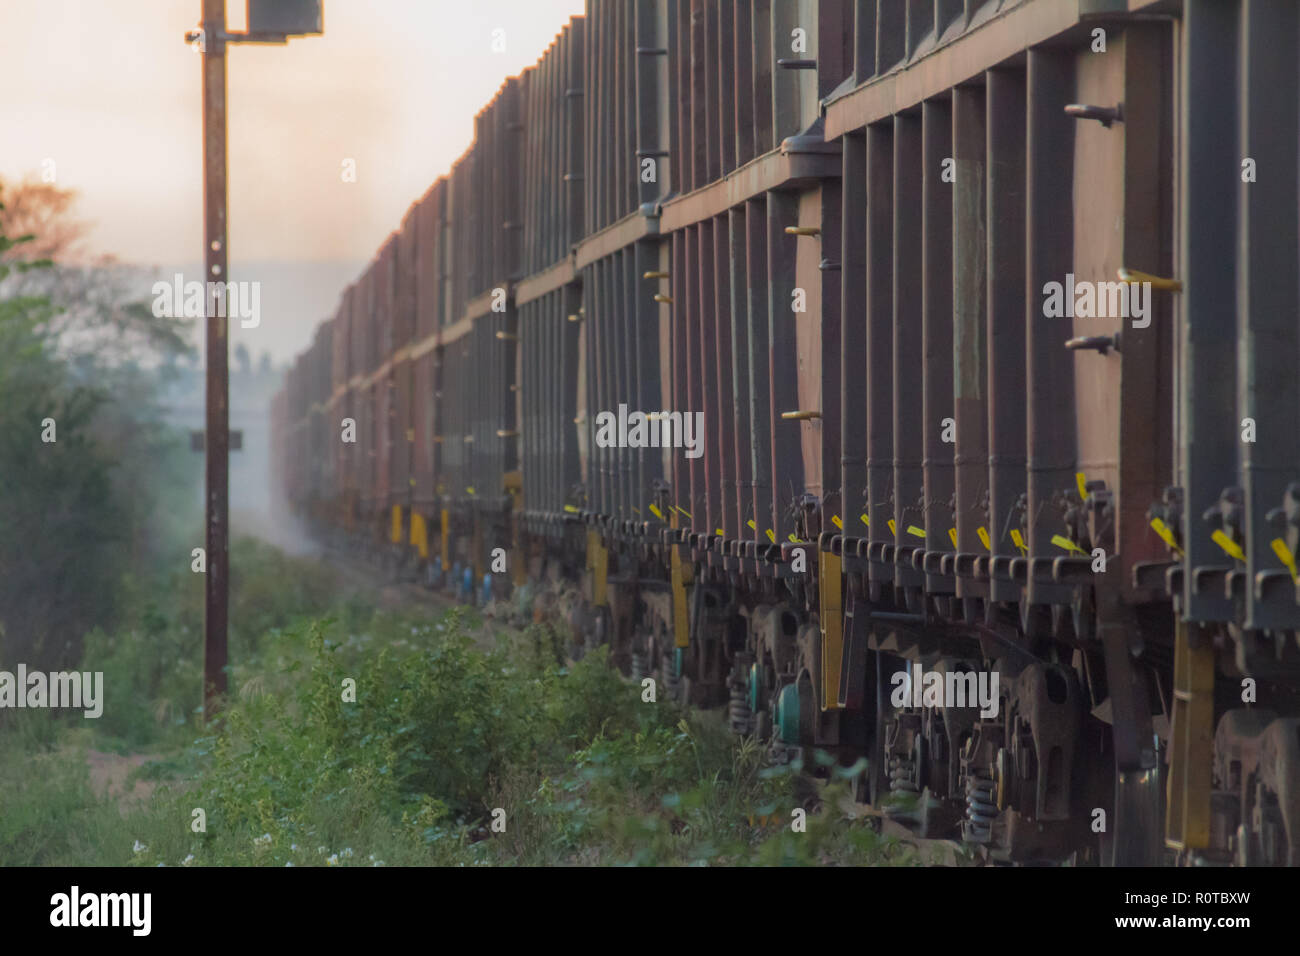 train waggons comming from misty background along railway - Stock Image